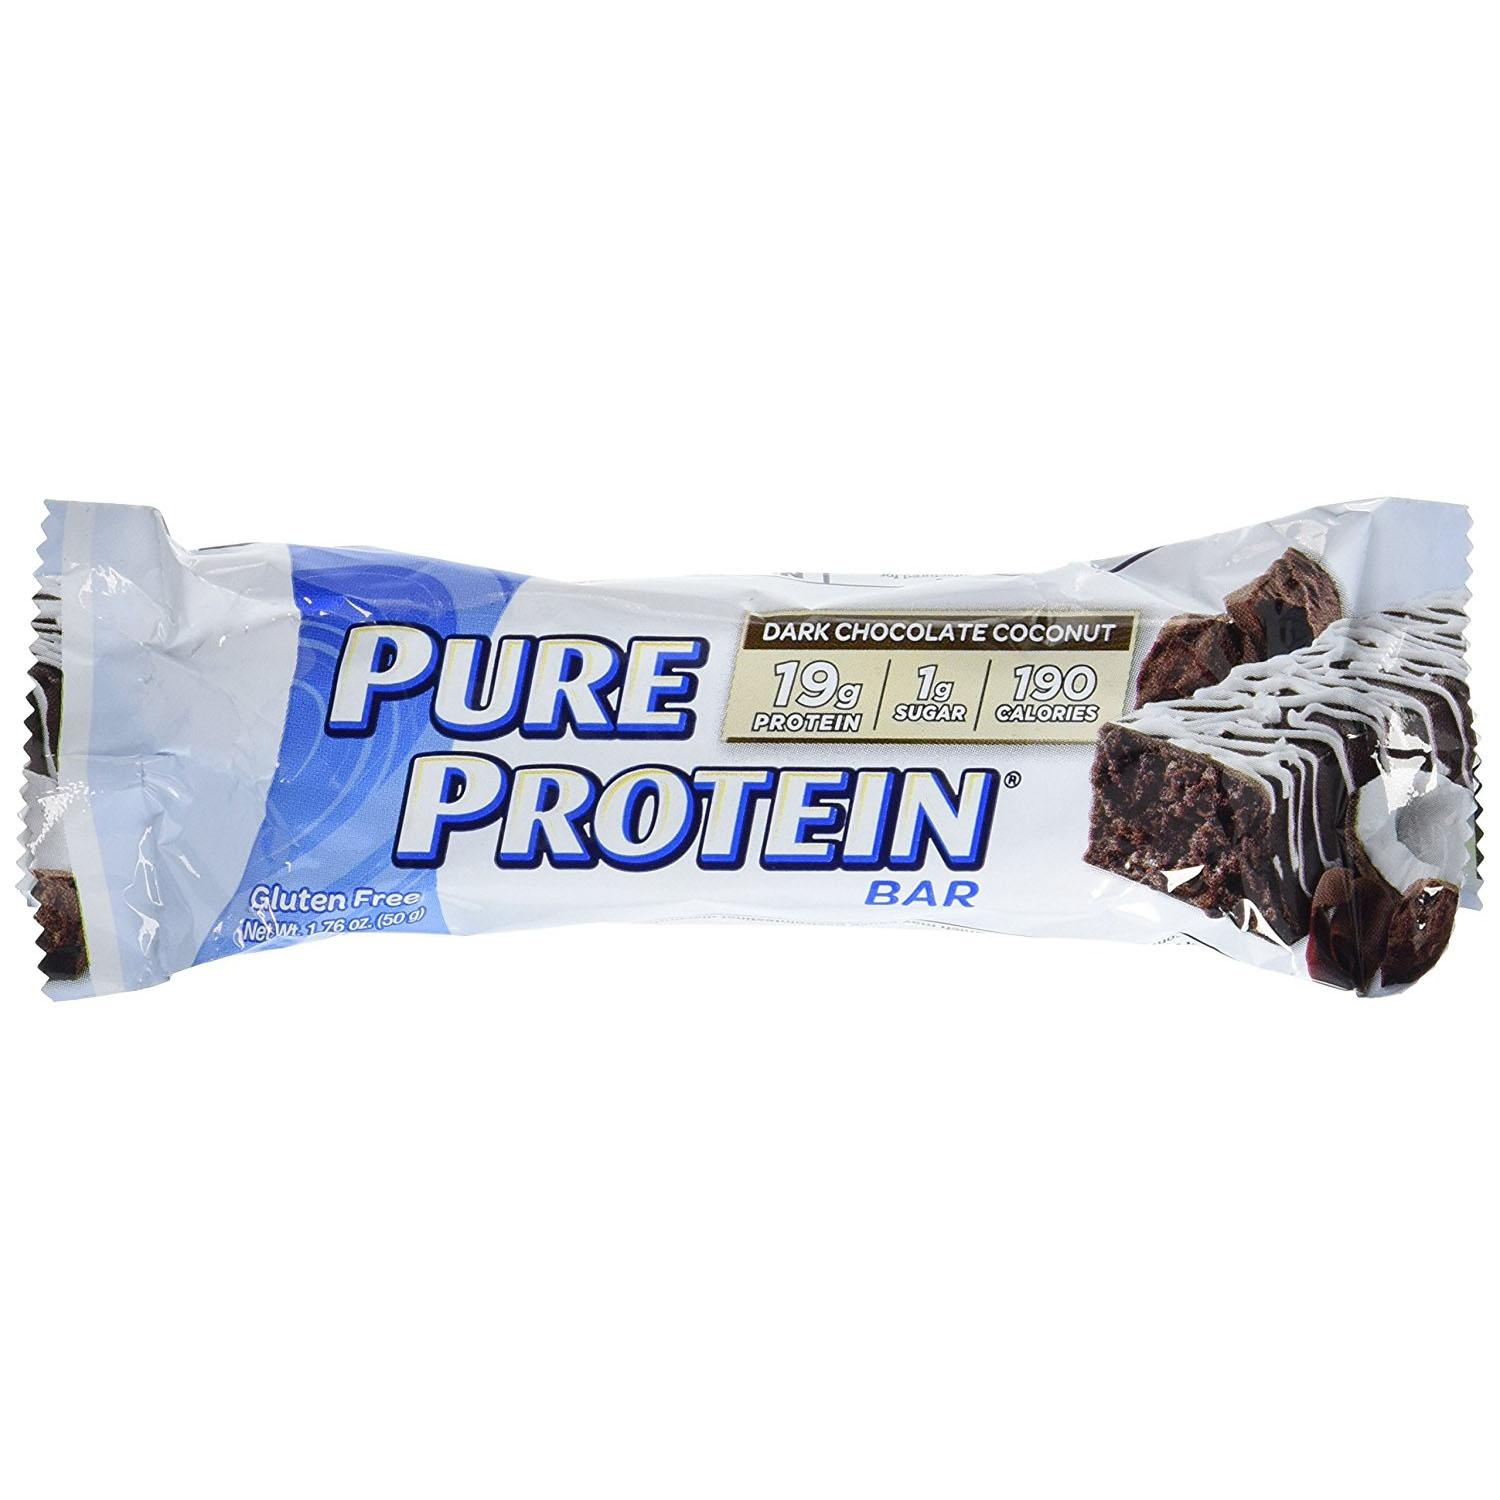 6 Pure Protein Crunch Bars